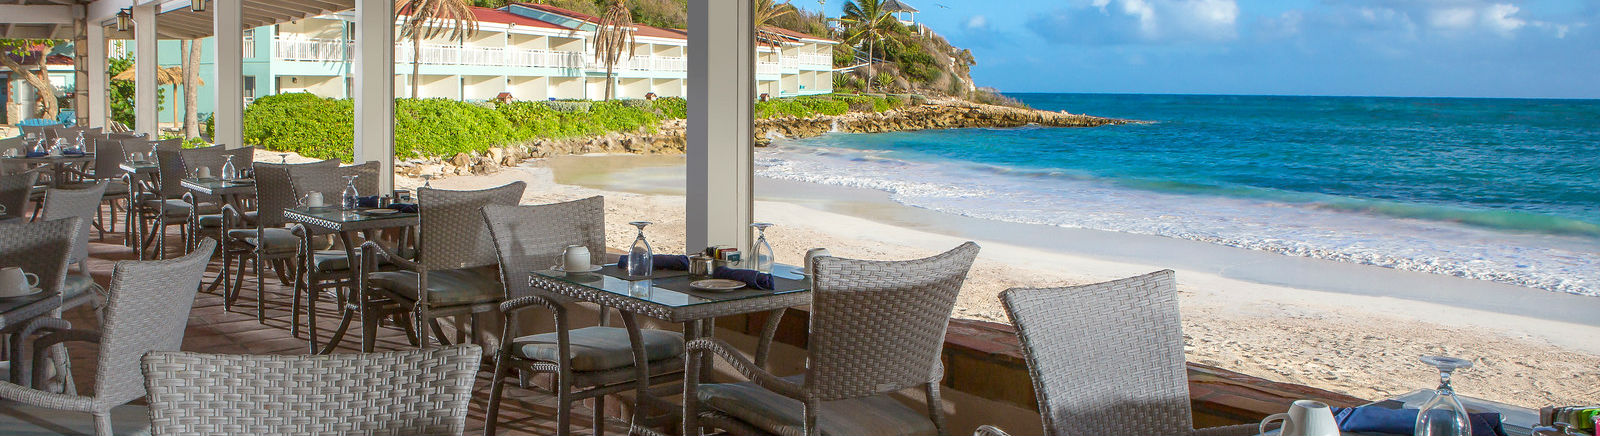 Dining lounge on the beach at the Pineapple Beach Club, Antigua